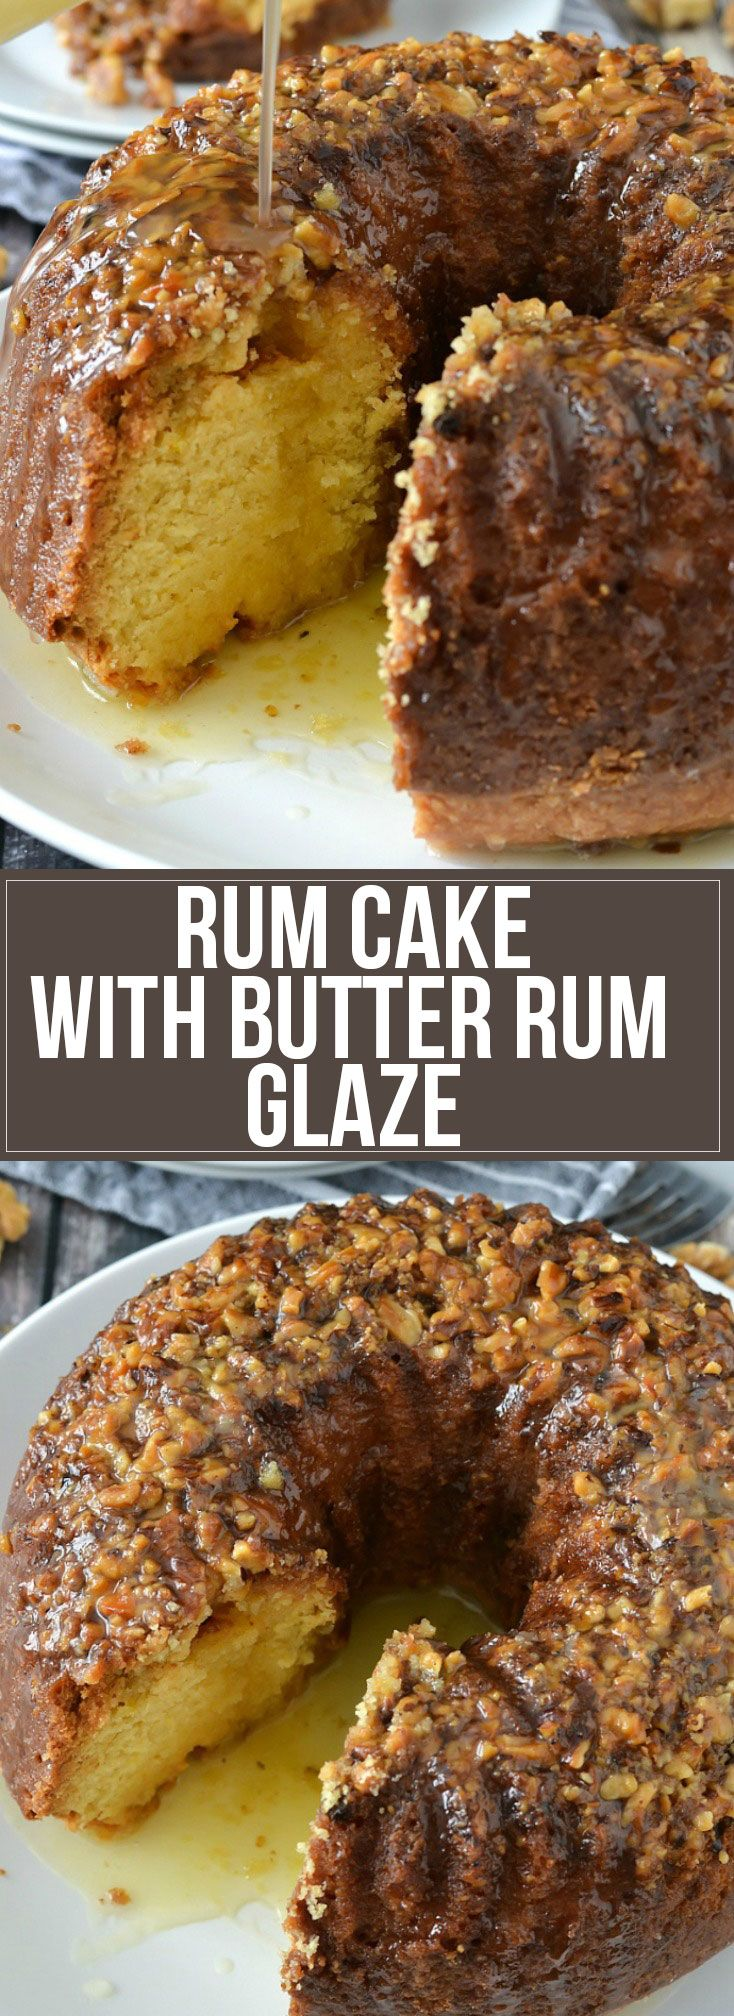 An easy homemade recipe for moist and delicious Rum Cake with topped with Butter Rum Glaze perfect for any holiday or occasion! is part of Rum cake -